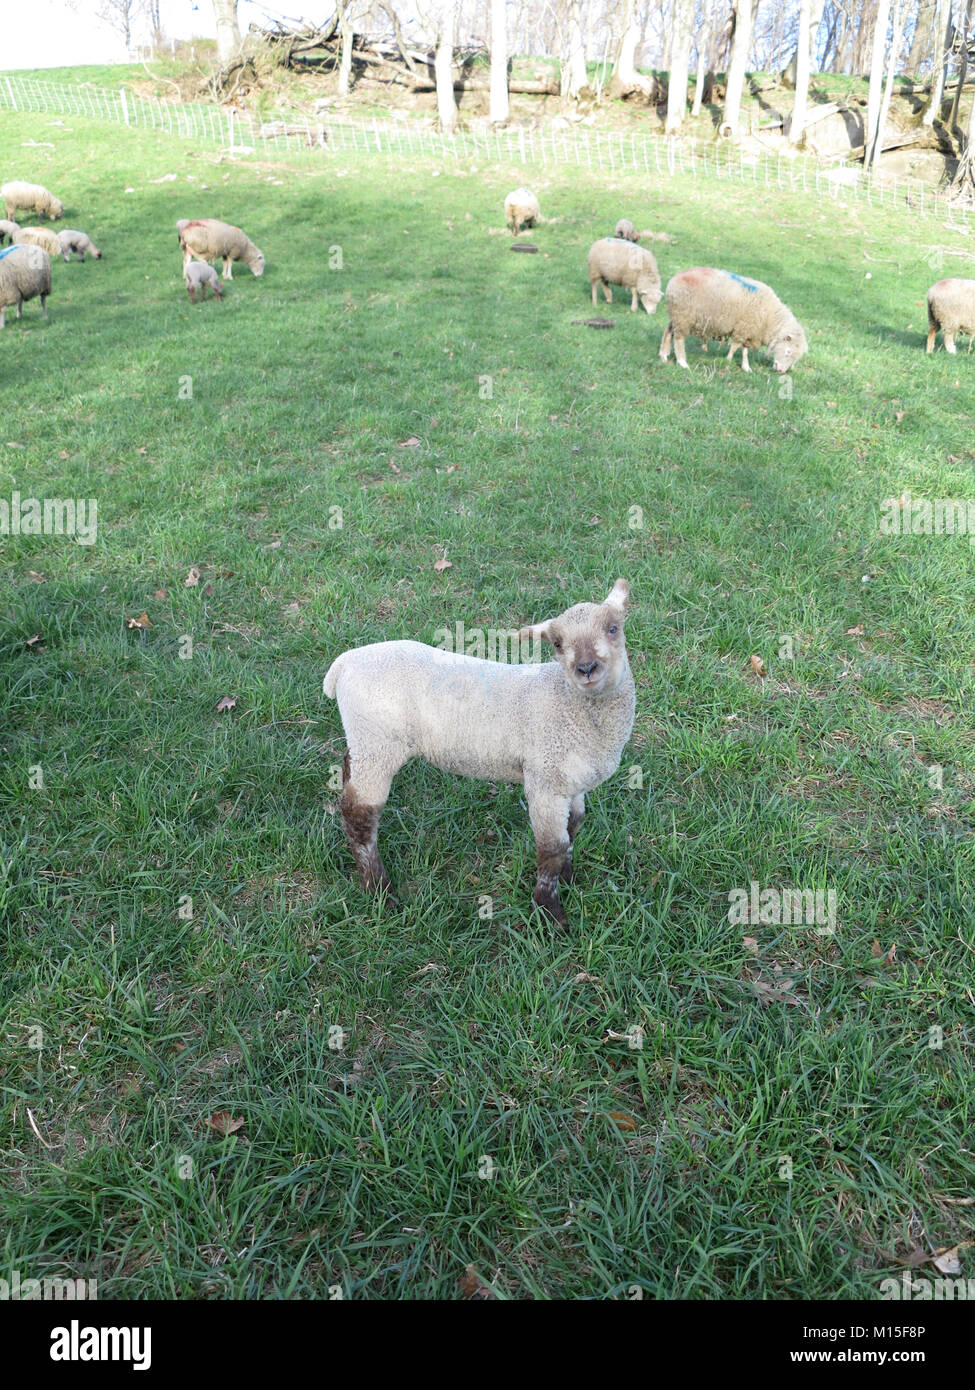 A Flock of Lambs on a Farm Eating while One is Posing Stock Photo